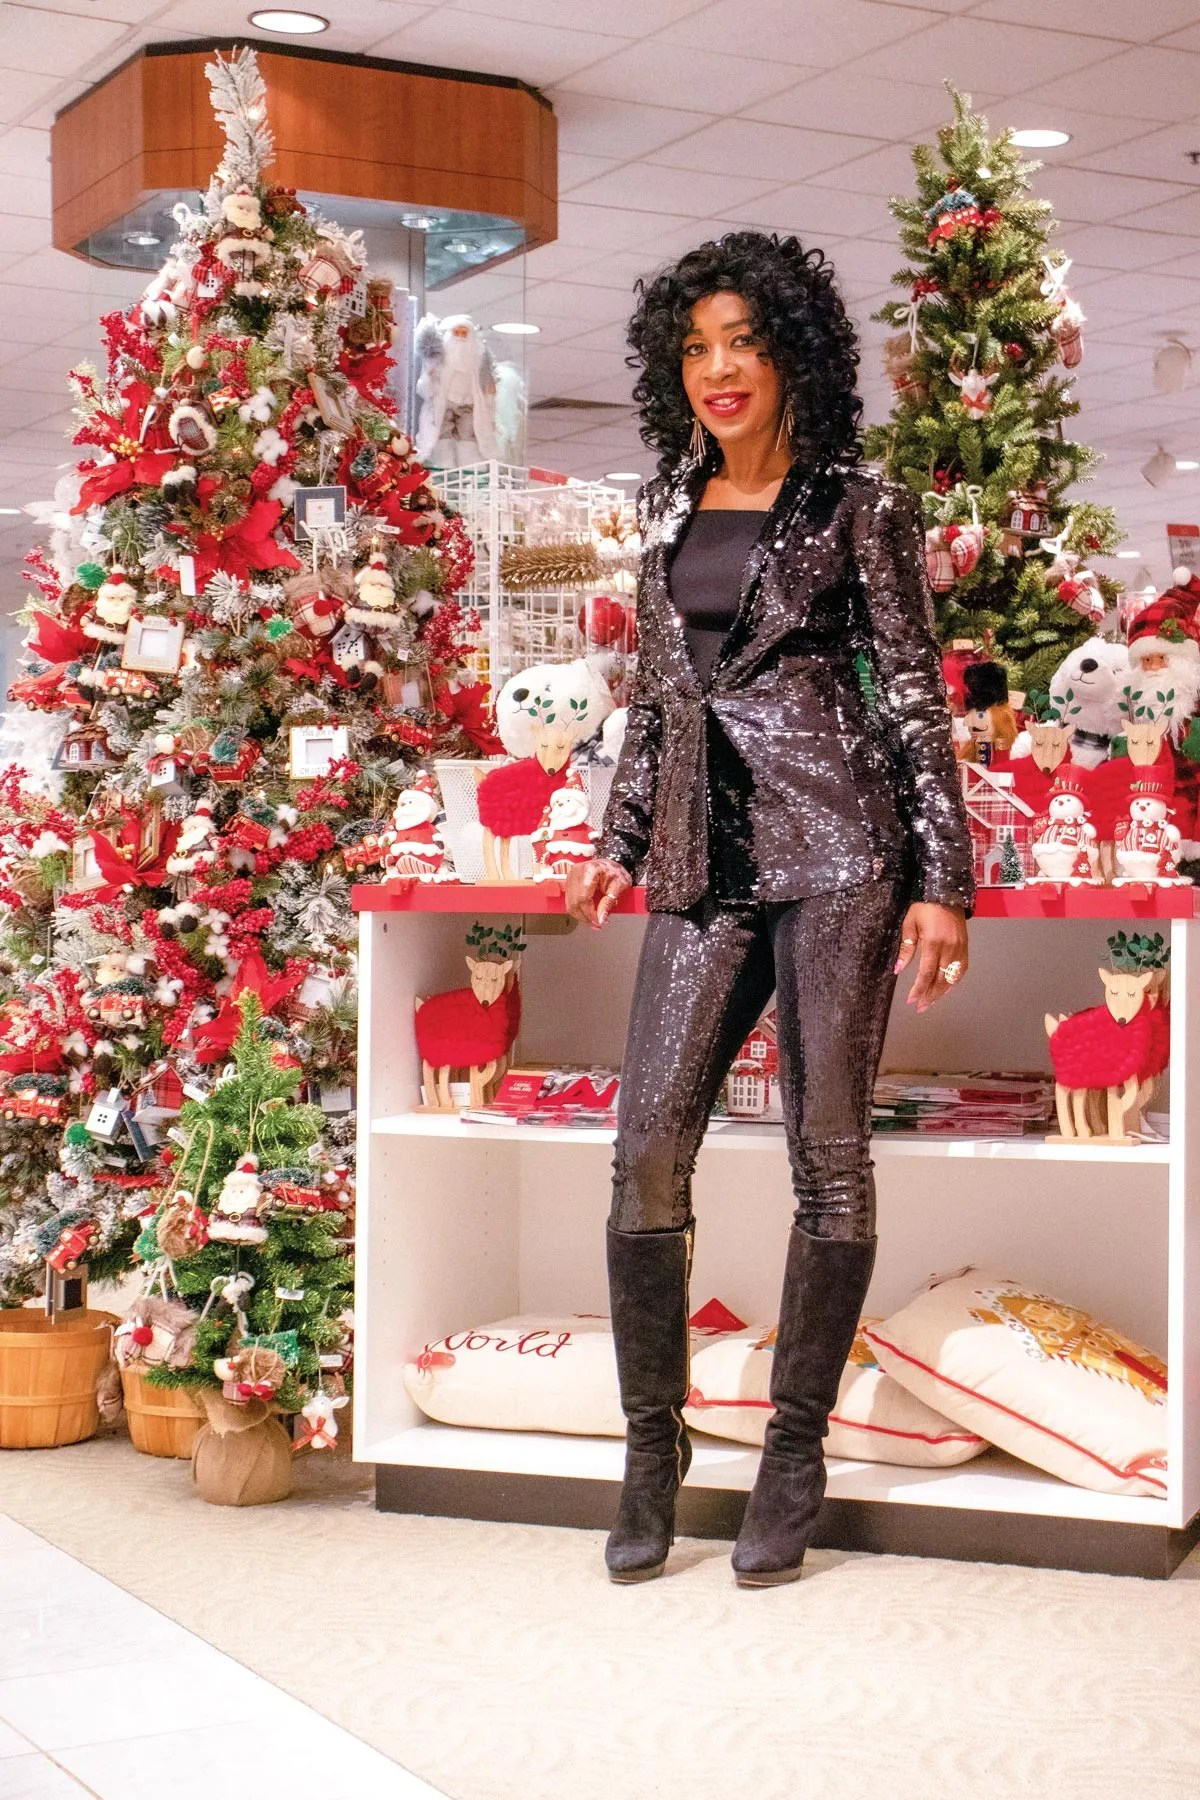 Holiday Styles at Macys Valley View in Roanoke Virignia